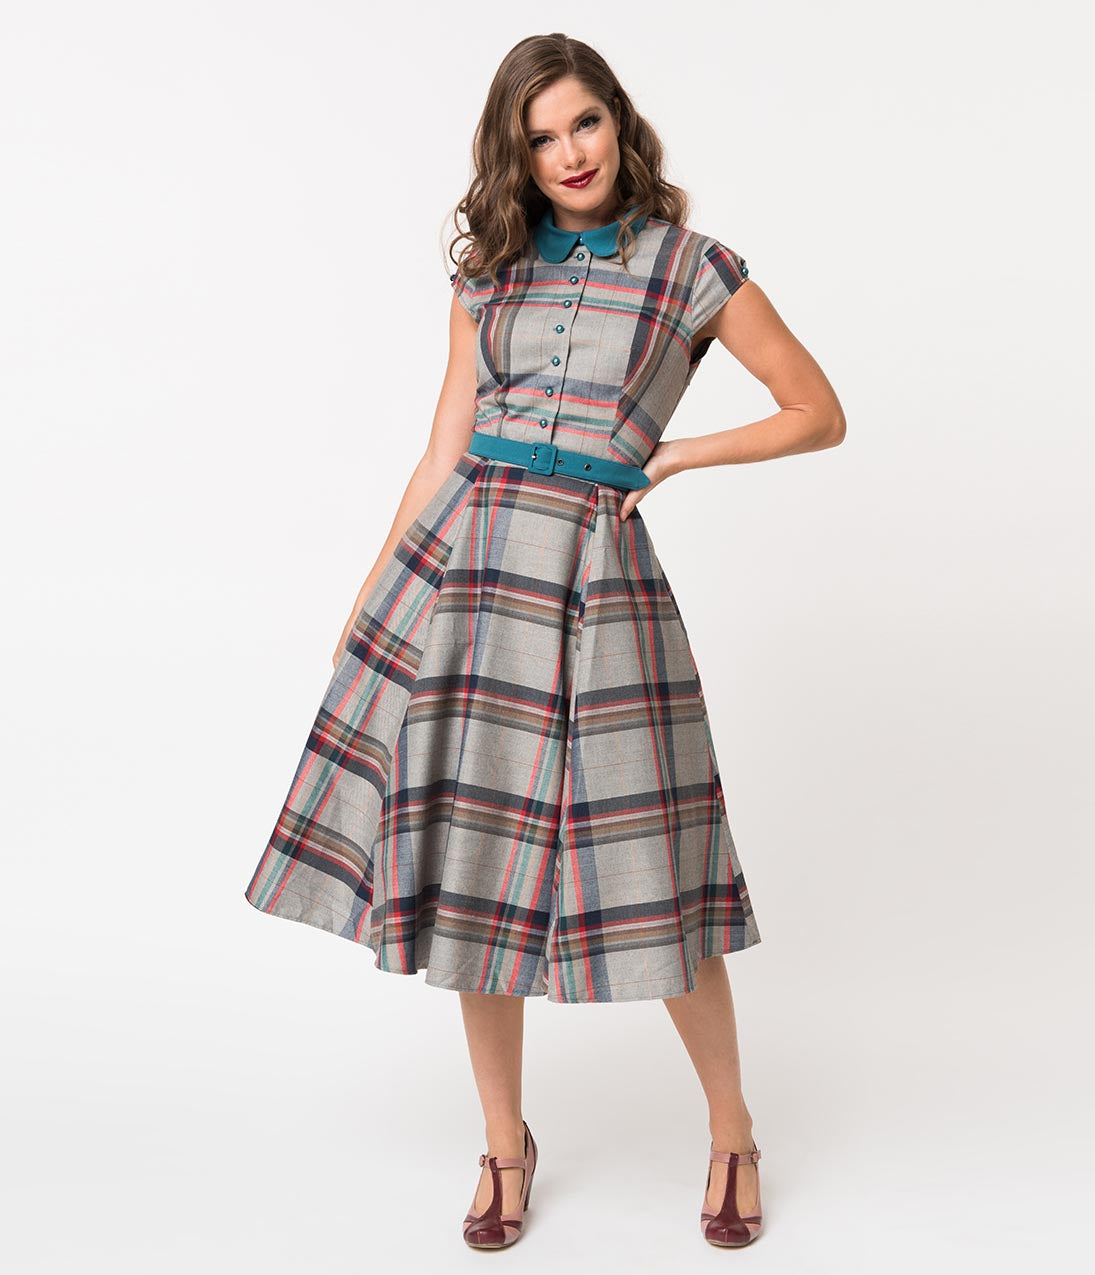 50 Vintage Inspired Clothing Stores Miss Candy Floss 1950S Style Grey Tartan Darla Preppy Swing Dress $138.00 AT vintagedancer.com